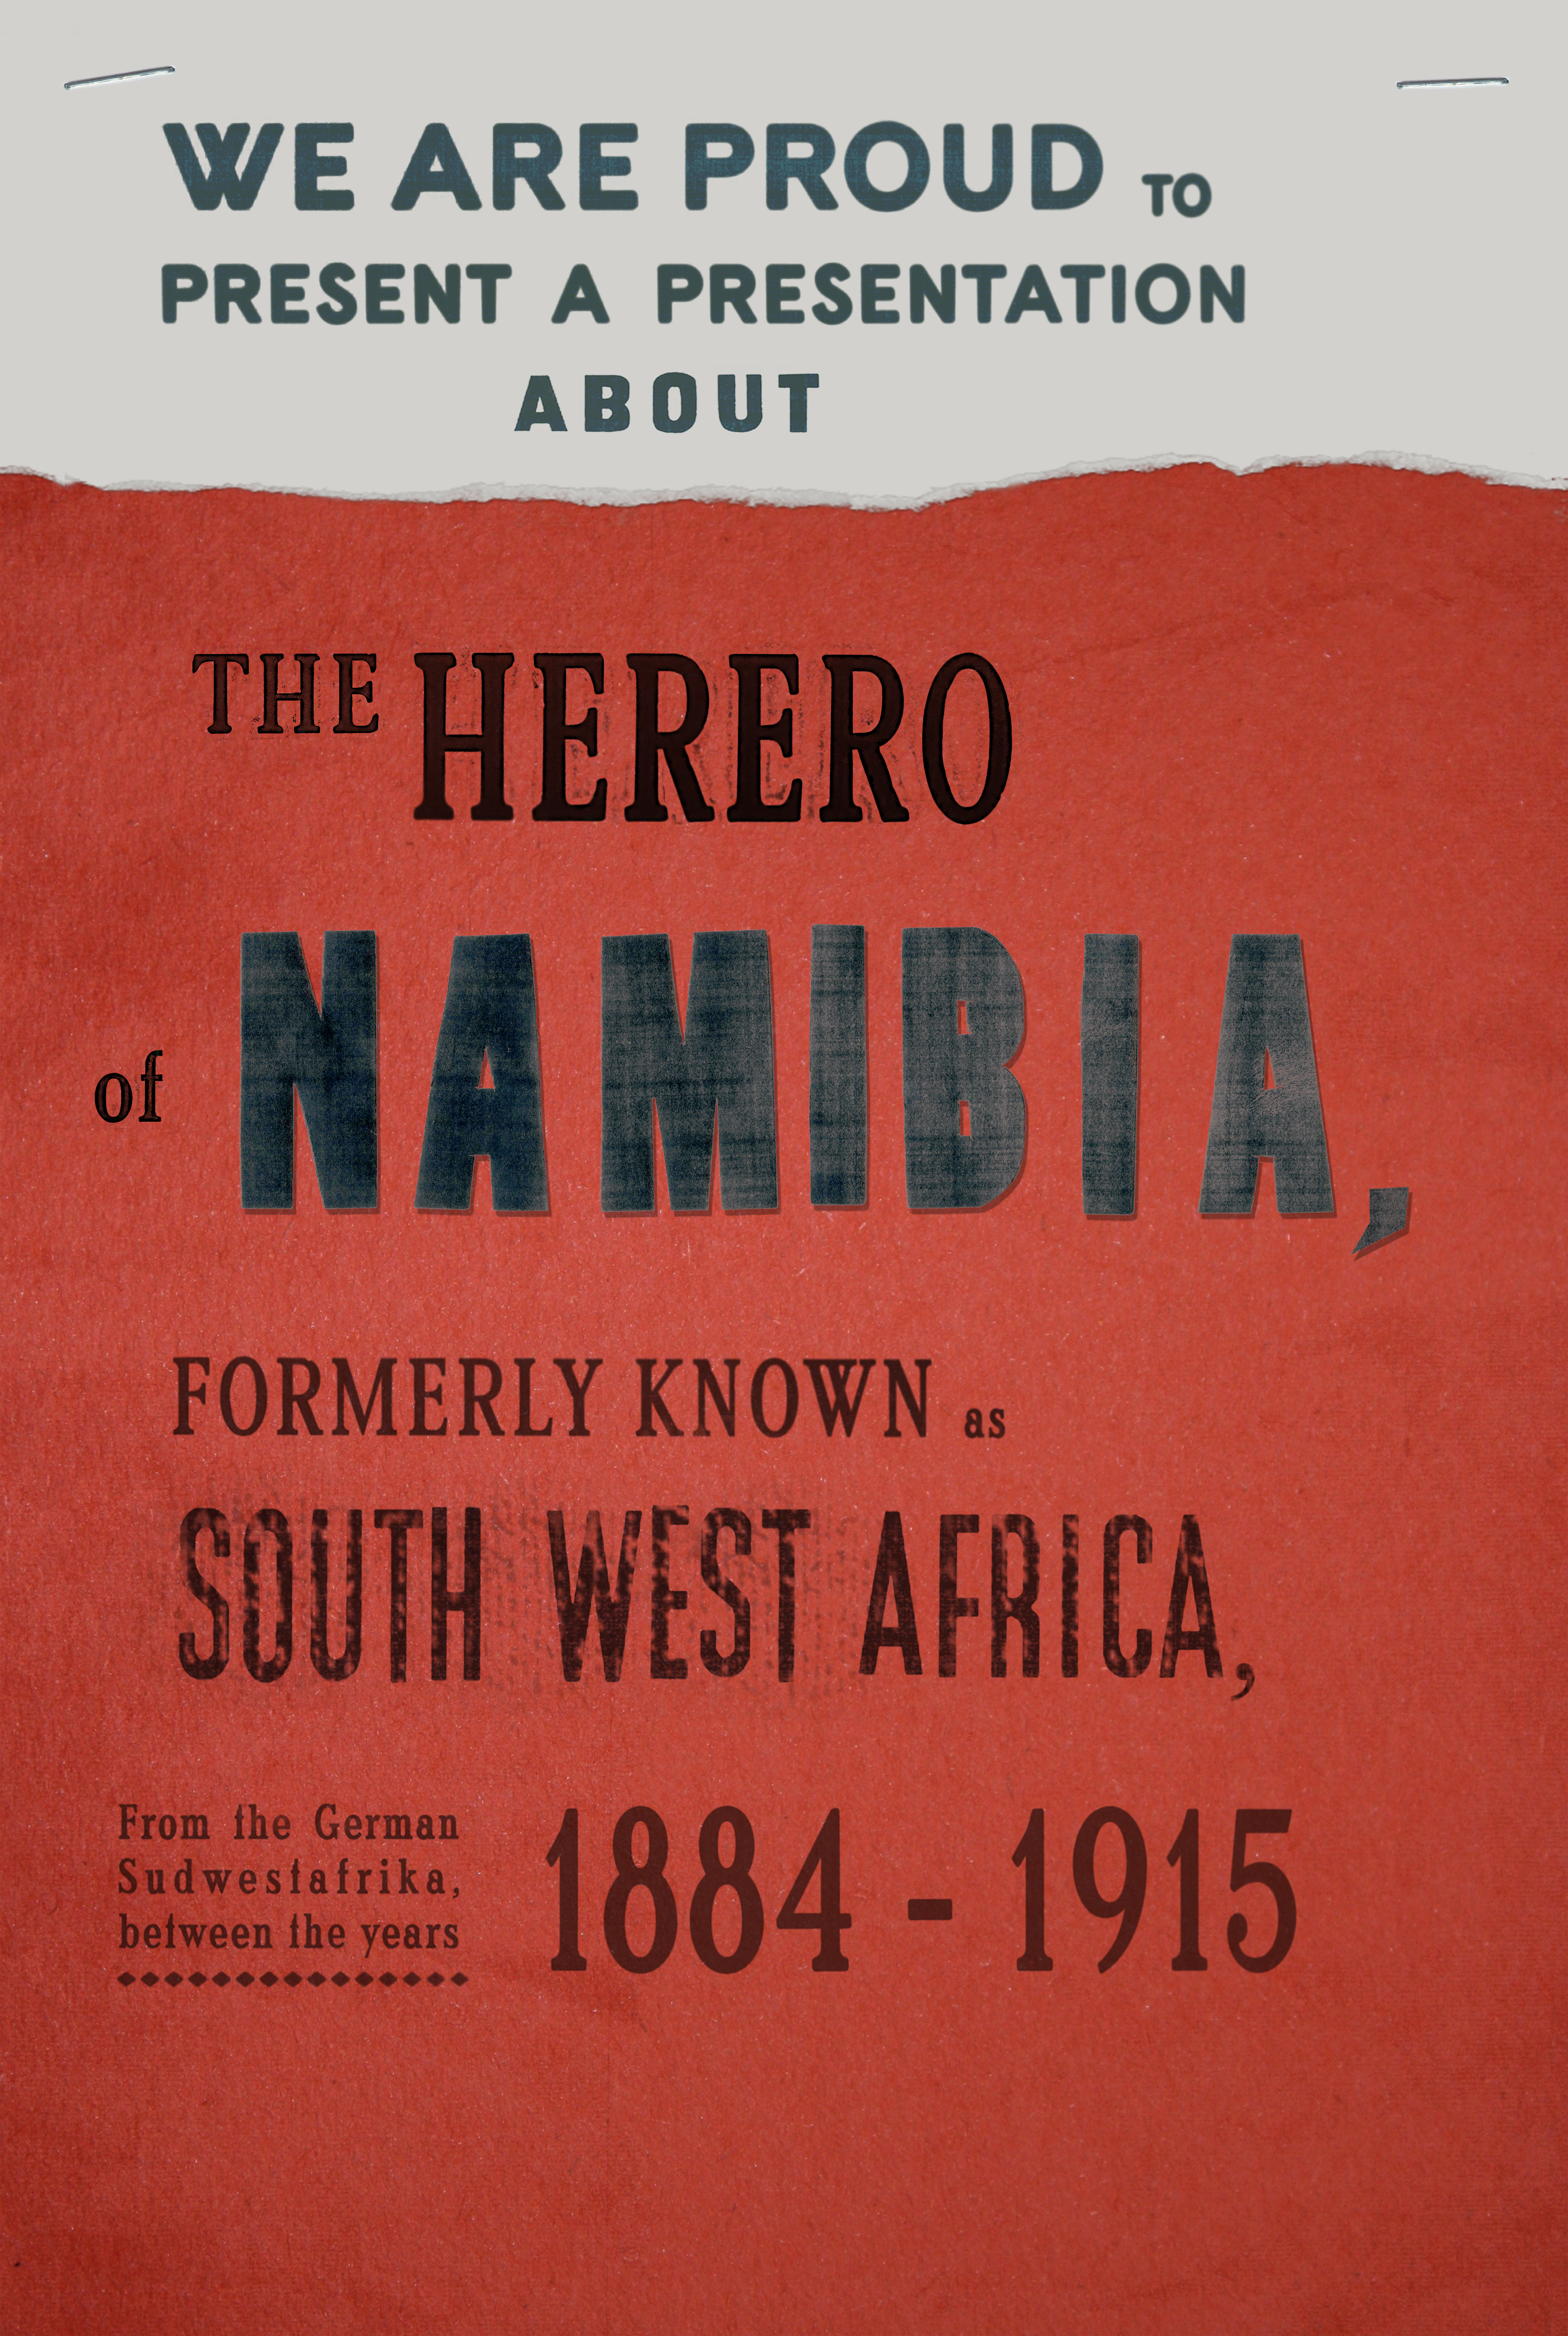 herero of namibia